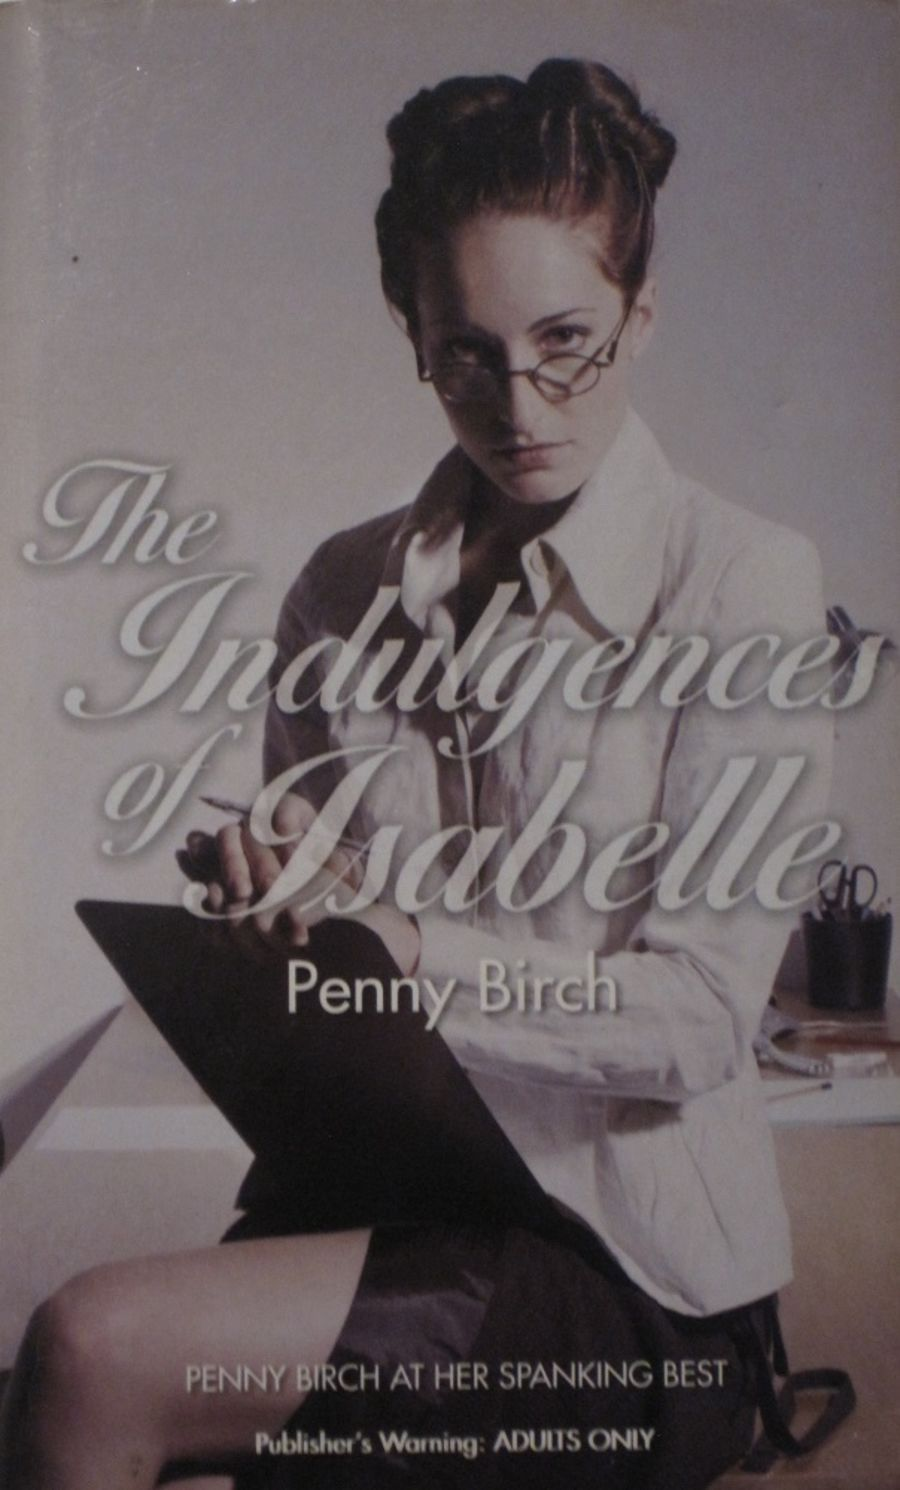 THE INDULGENCES OF ISABELLE.  2008 EROTIC FICTION PAPERBACK BOOK.